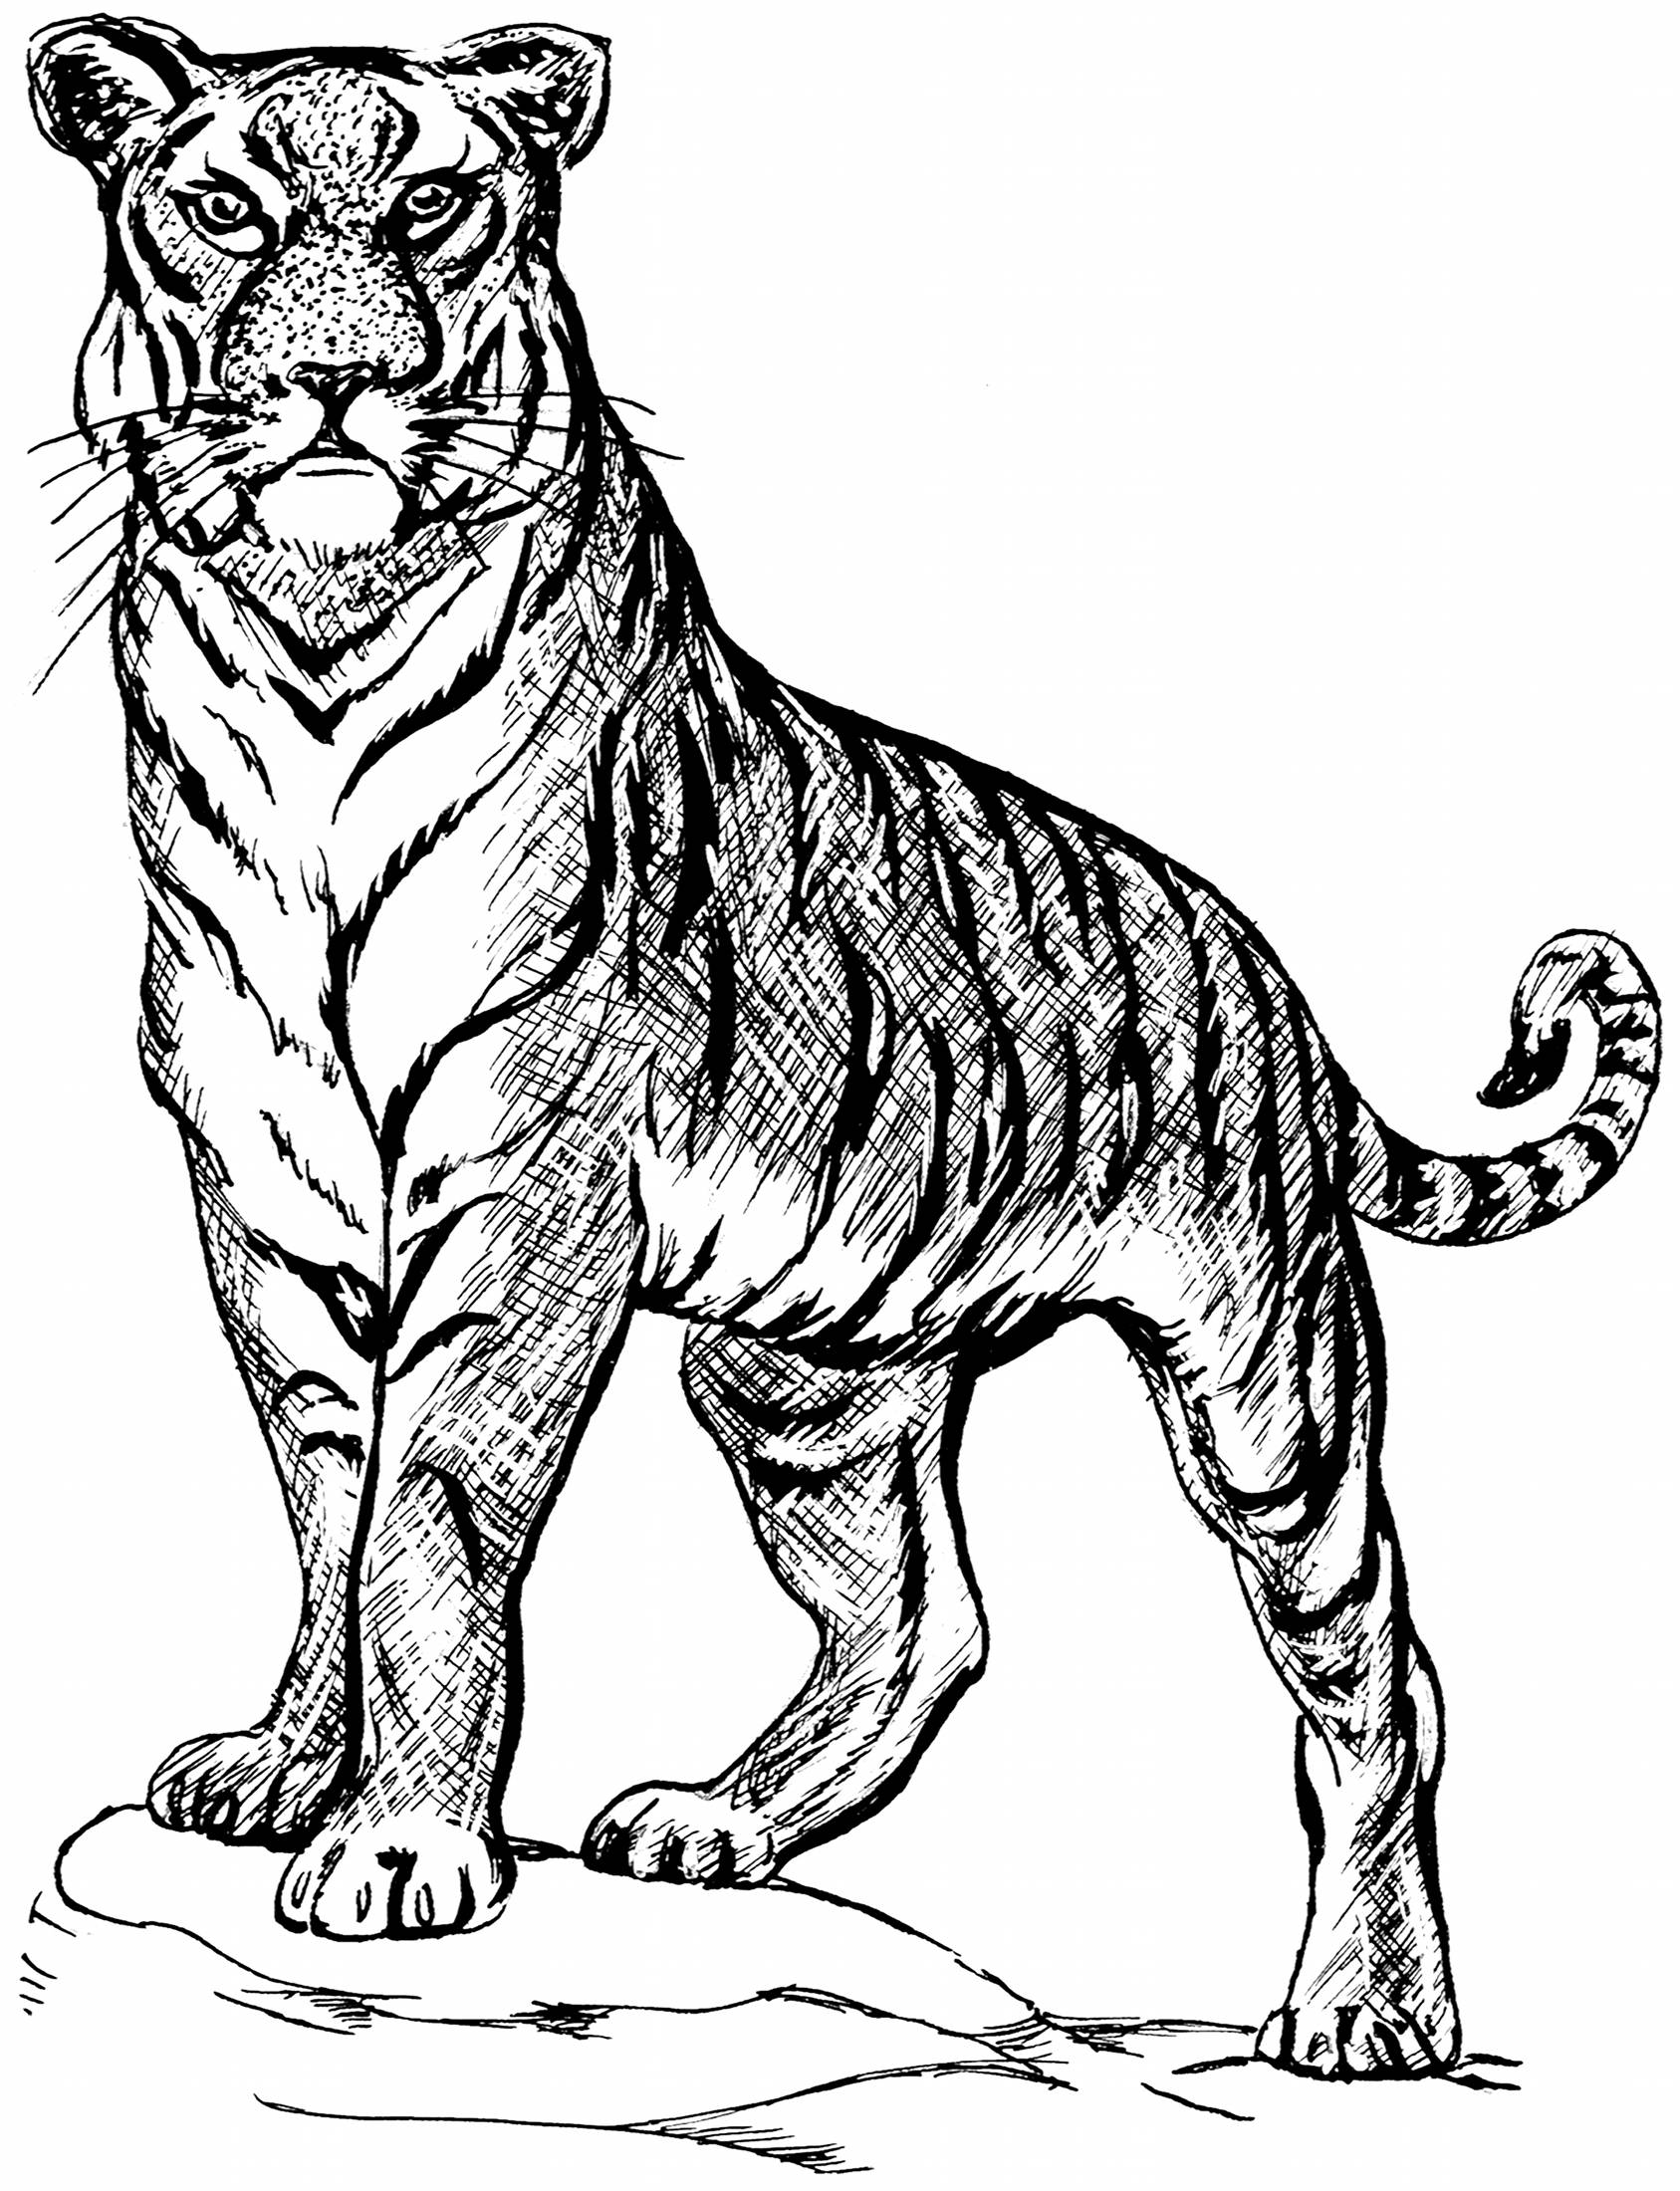 tiger images for colouring free printable animal tiger coloring pages colouring tiger for images